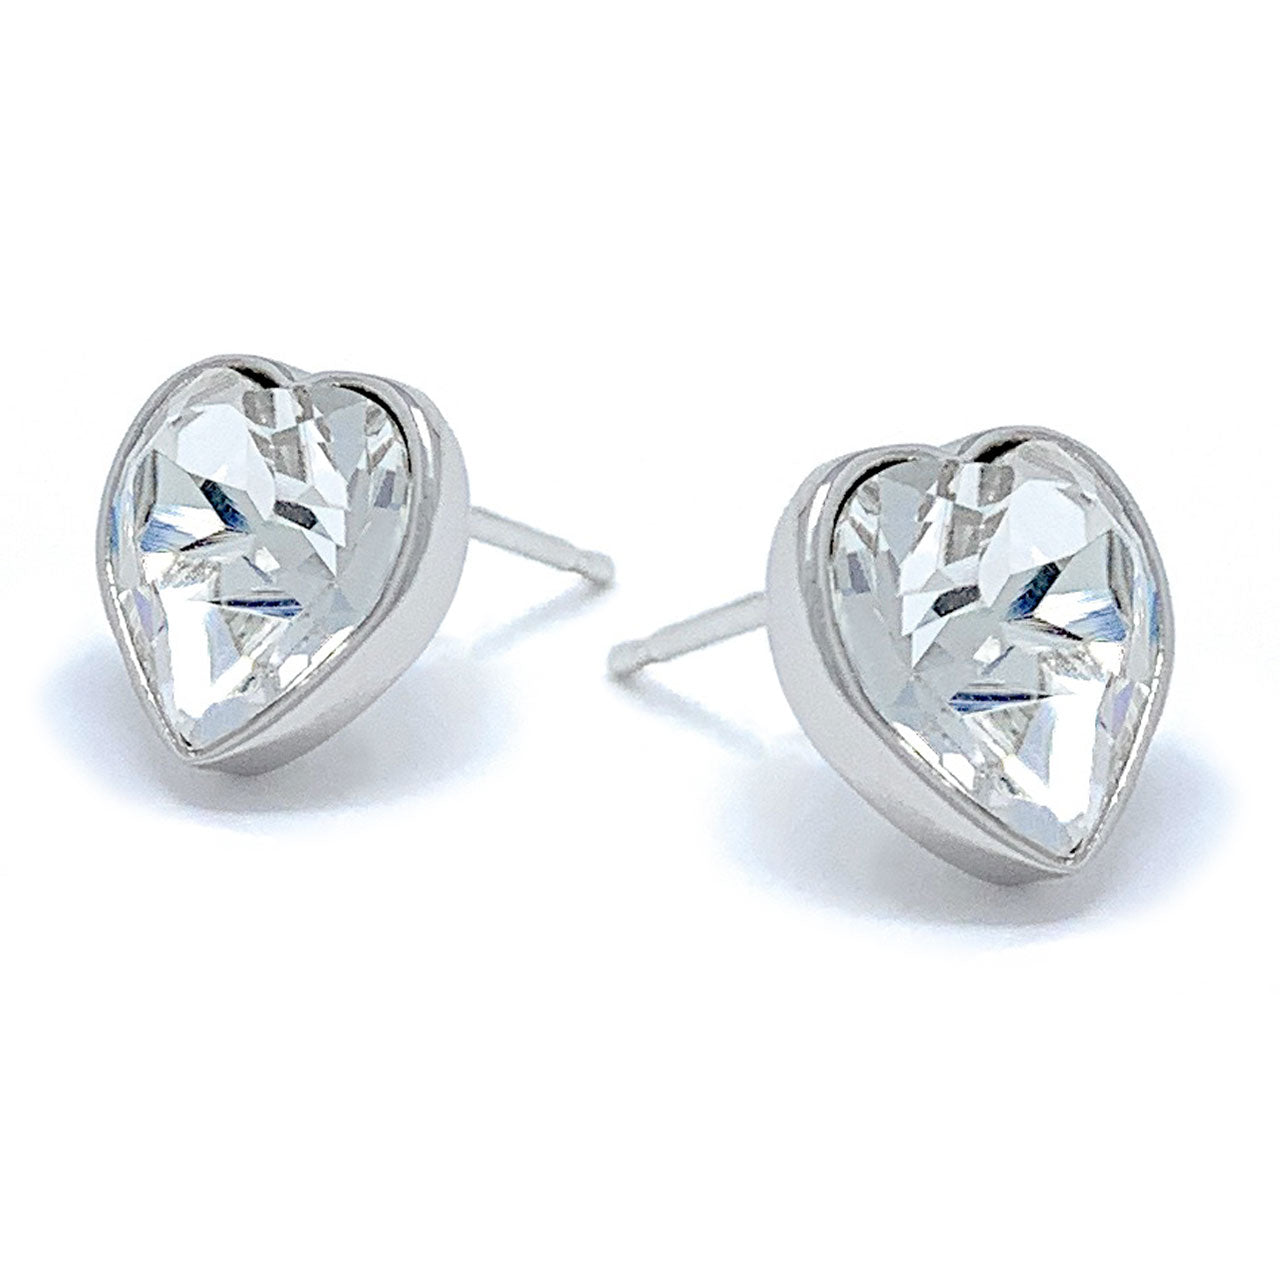 Lucia Stud Earrings with White Clear Heart Crystals from Swarovski Silver Toned Rhodium Plated - Ed Heart